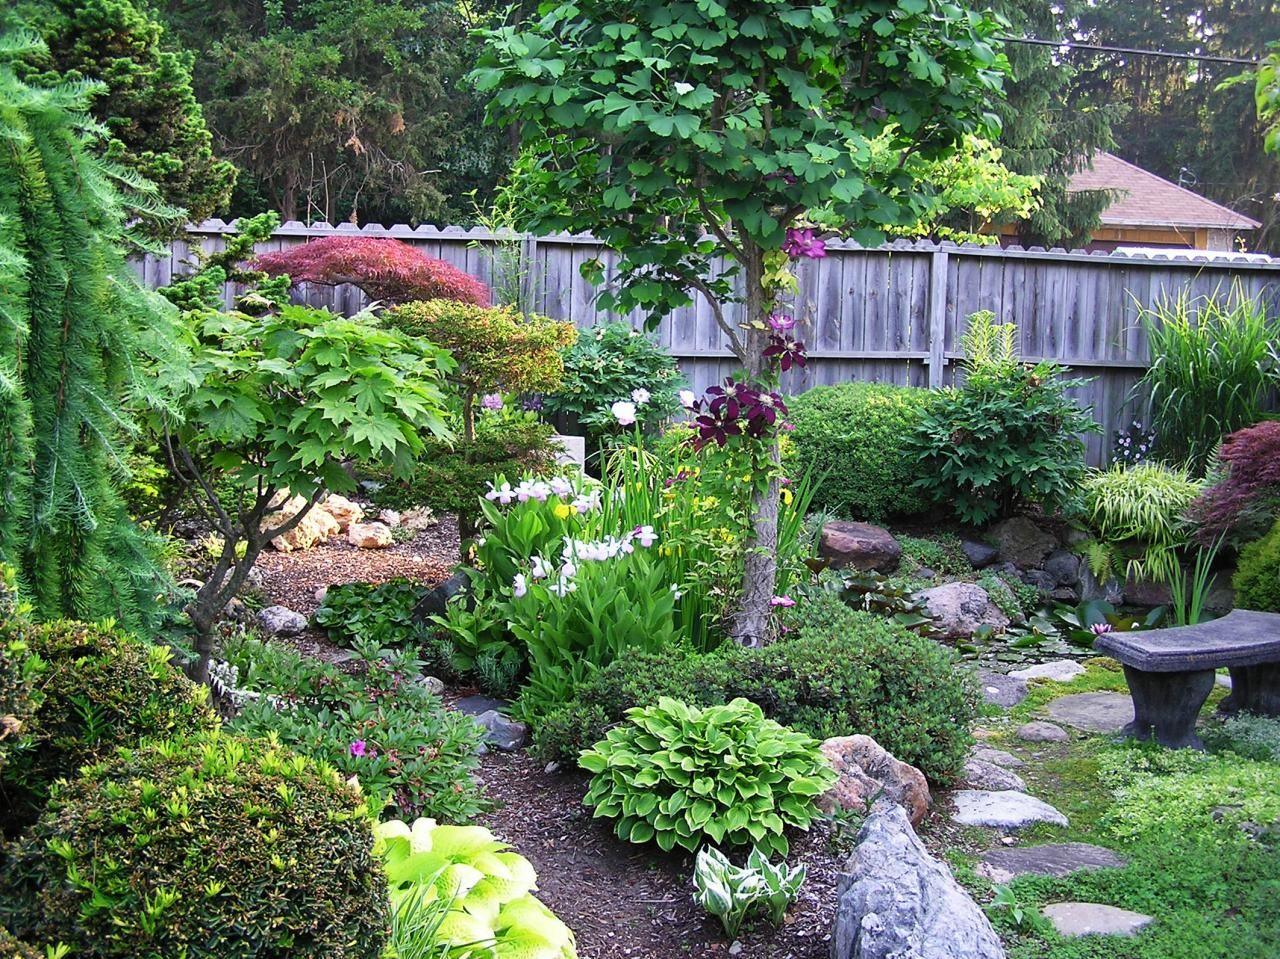 20 Gardens We Love From HGTV Fans | Small japanese garden ... on Small Backyard Japanese Garden Ideas id=94358